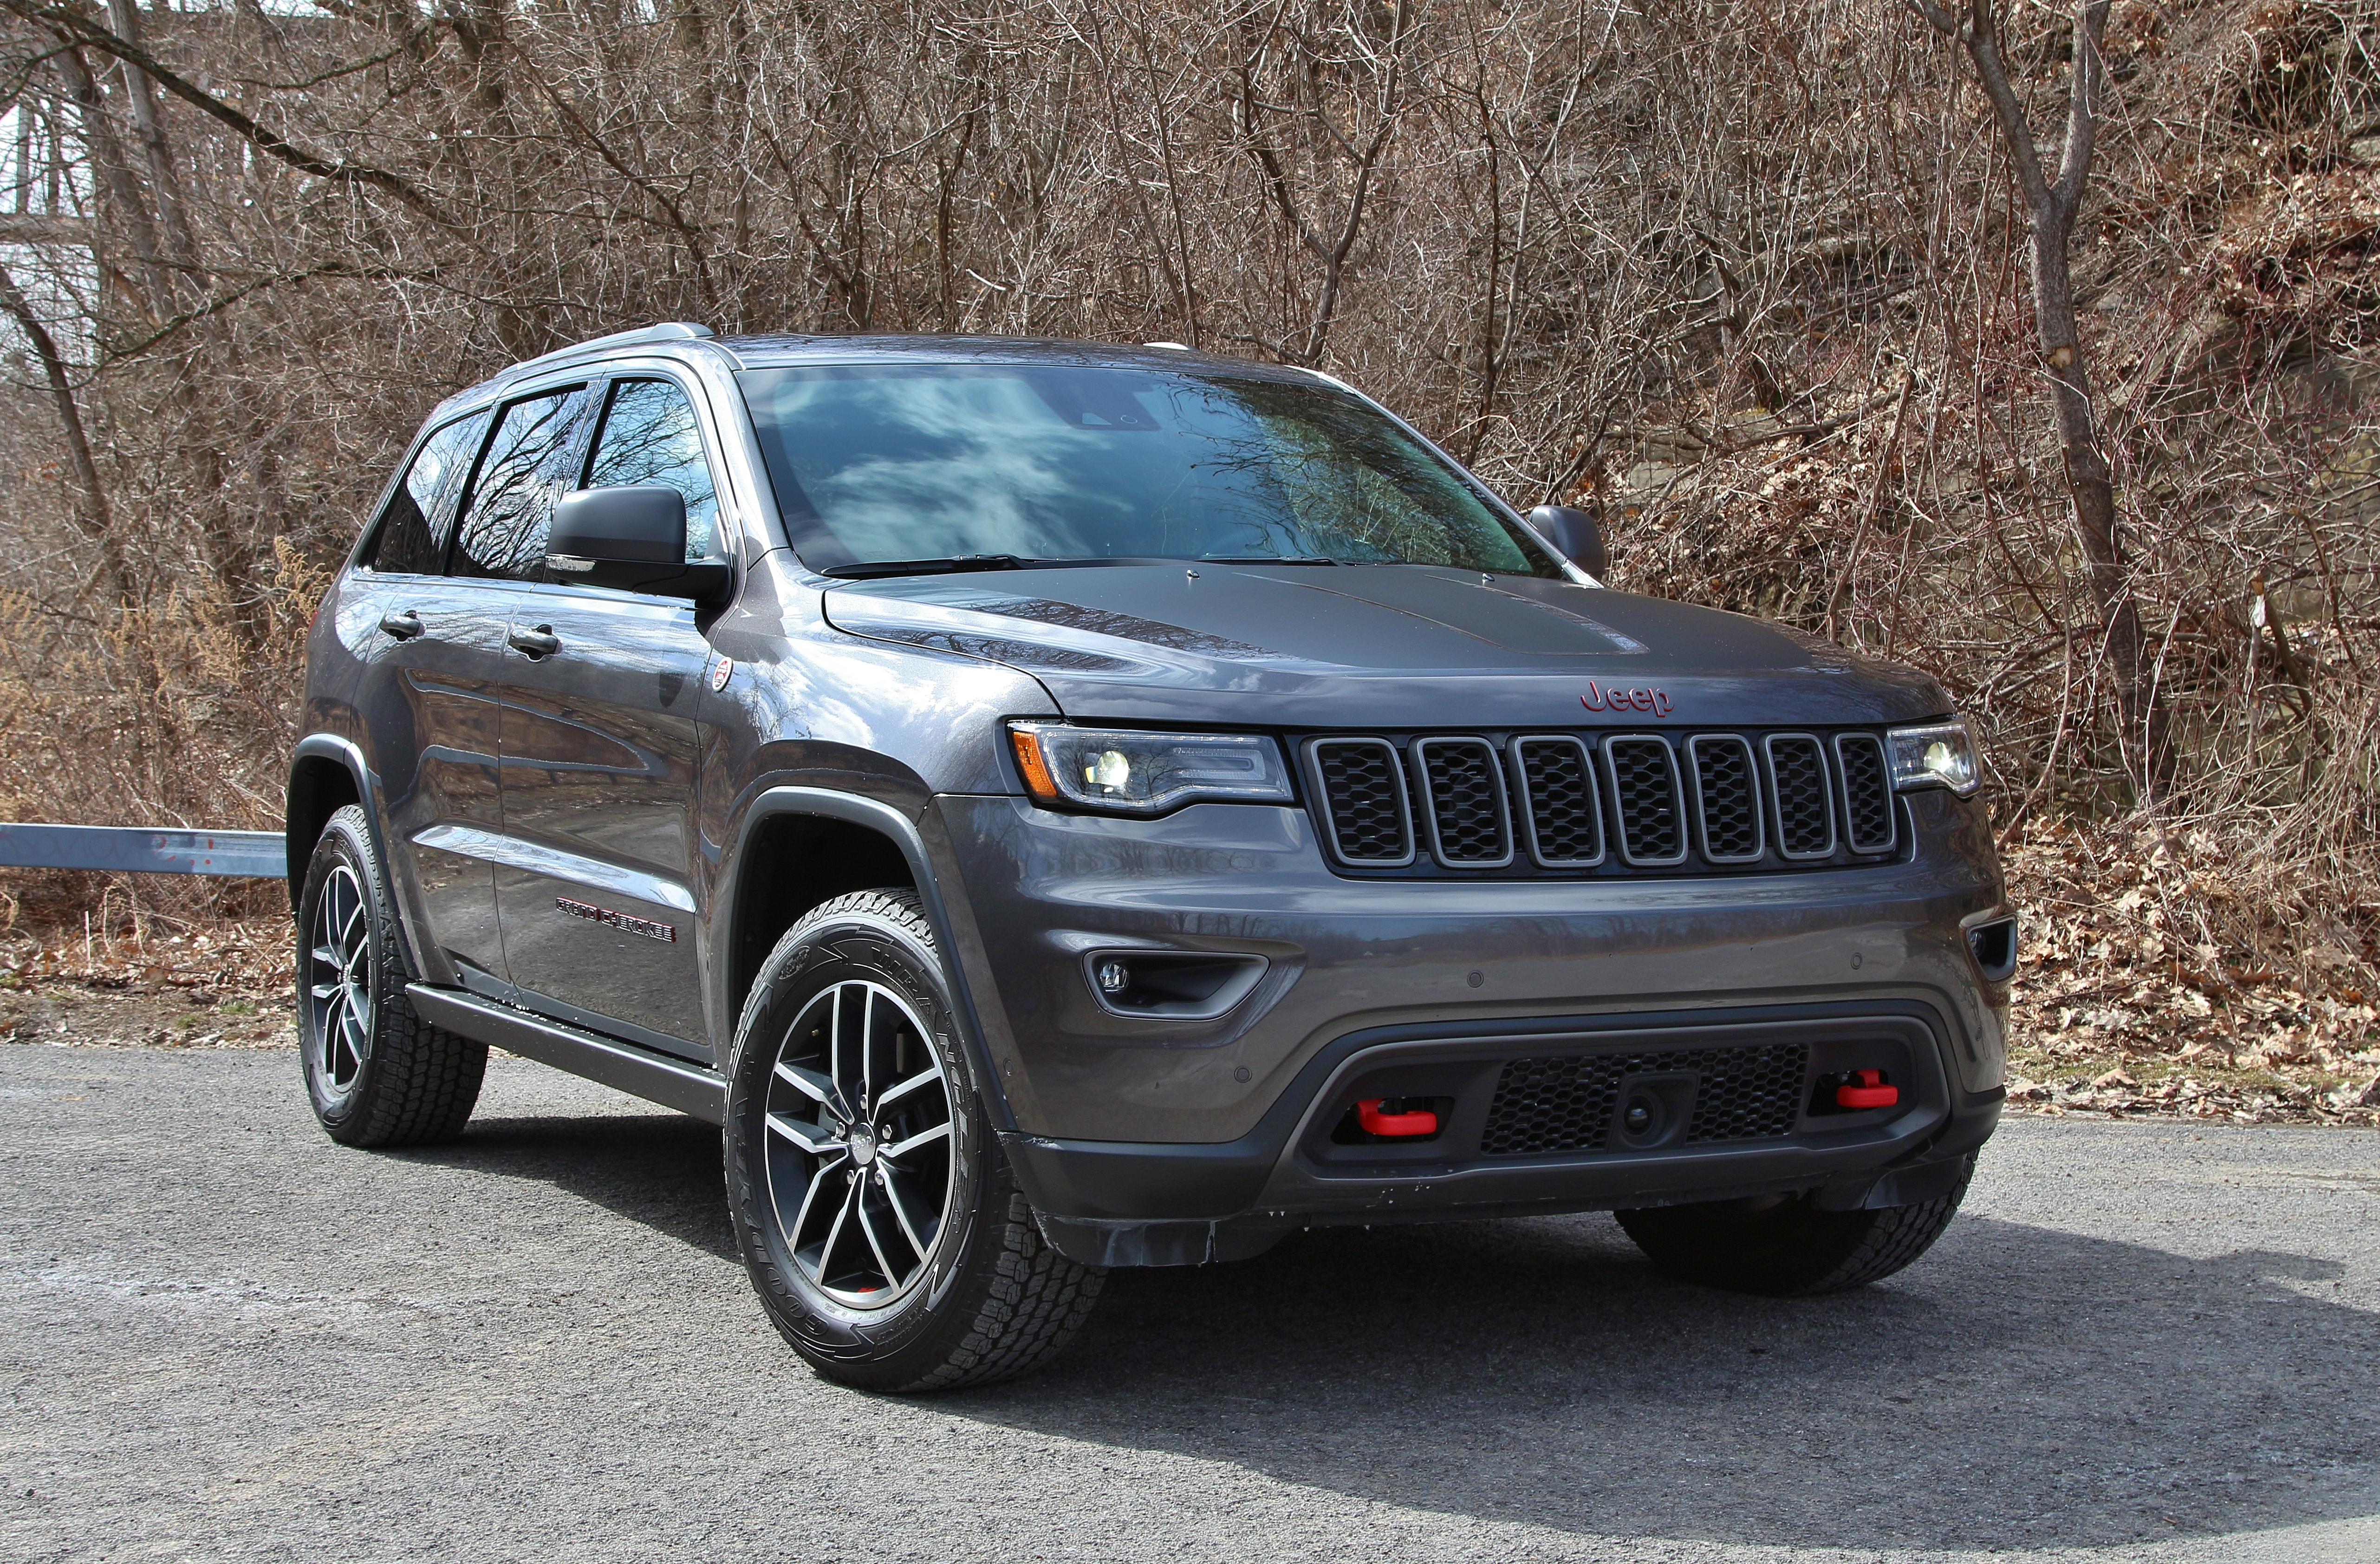 Used Cars Frederick Md >> Cherokee Limited Vs Trailhawk Jeep | Autos Post